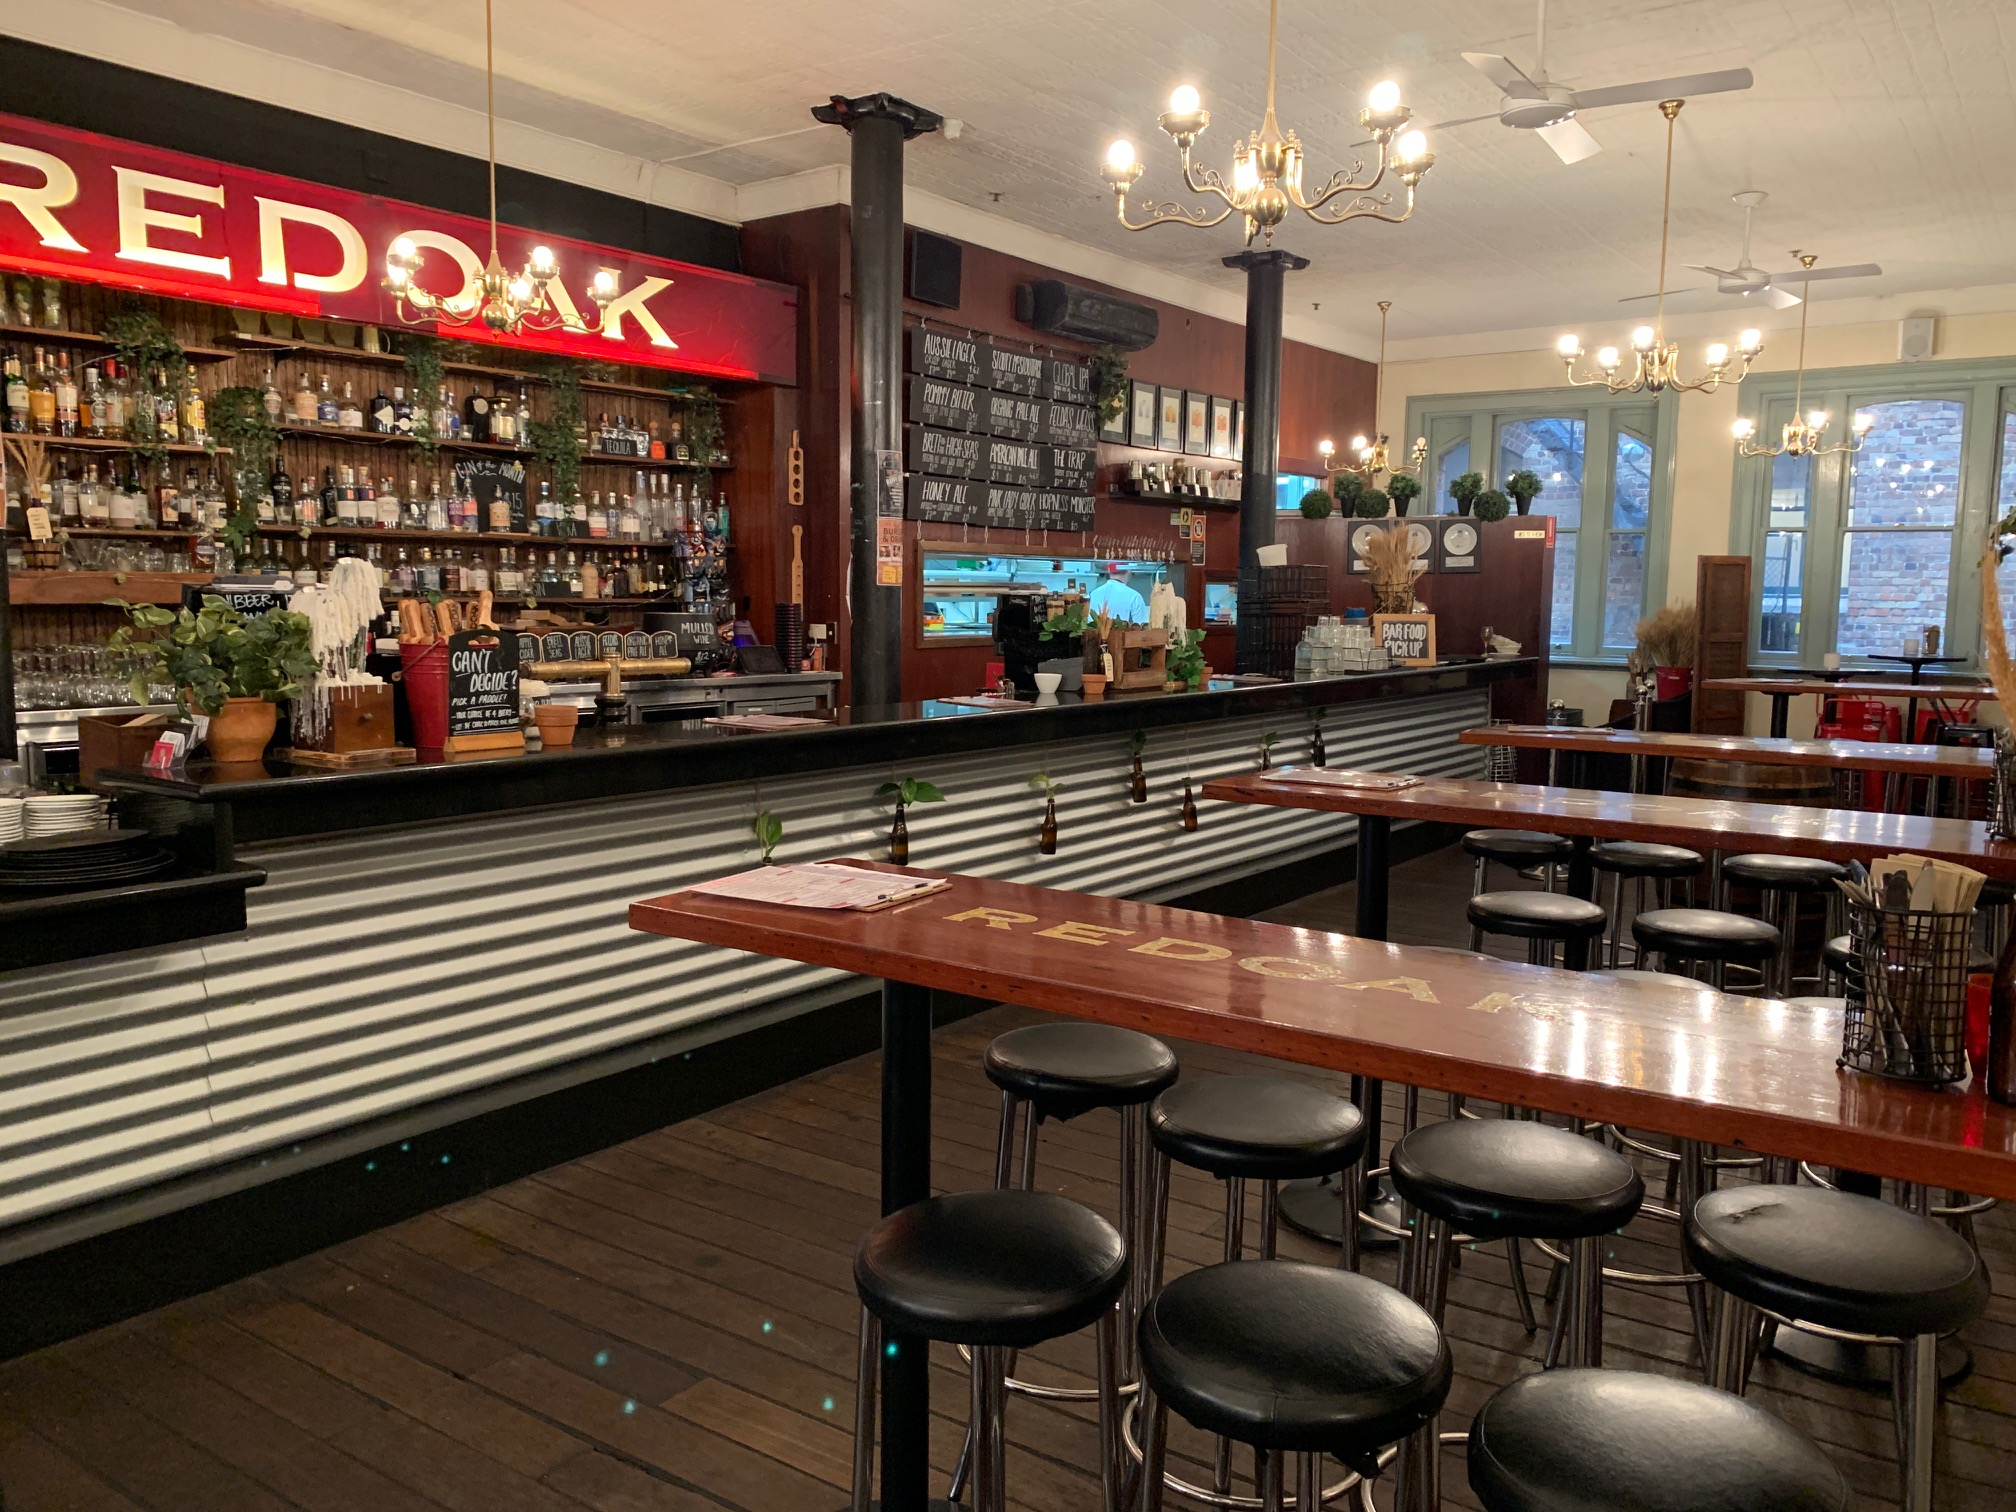 Redoak Restaurant & Bar